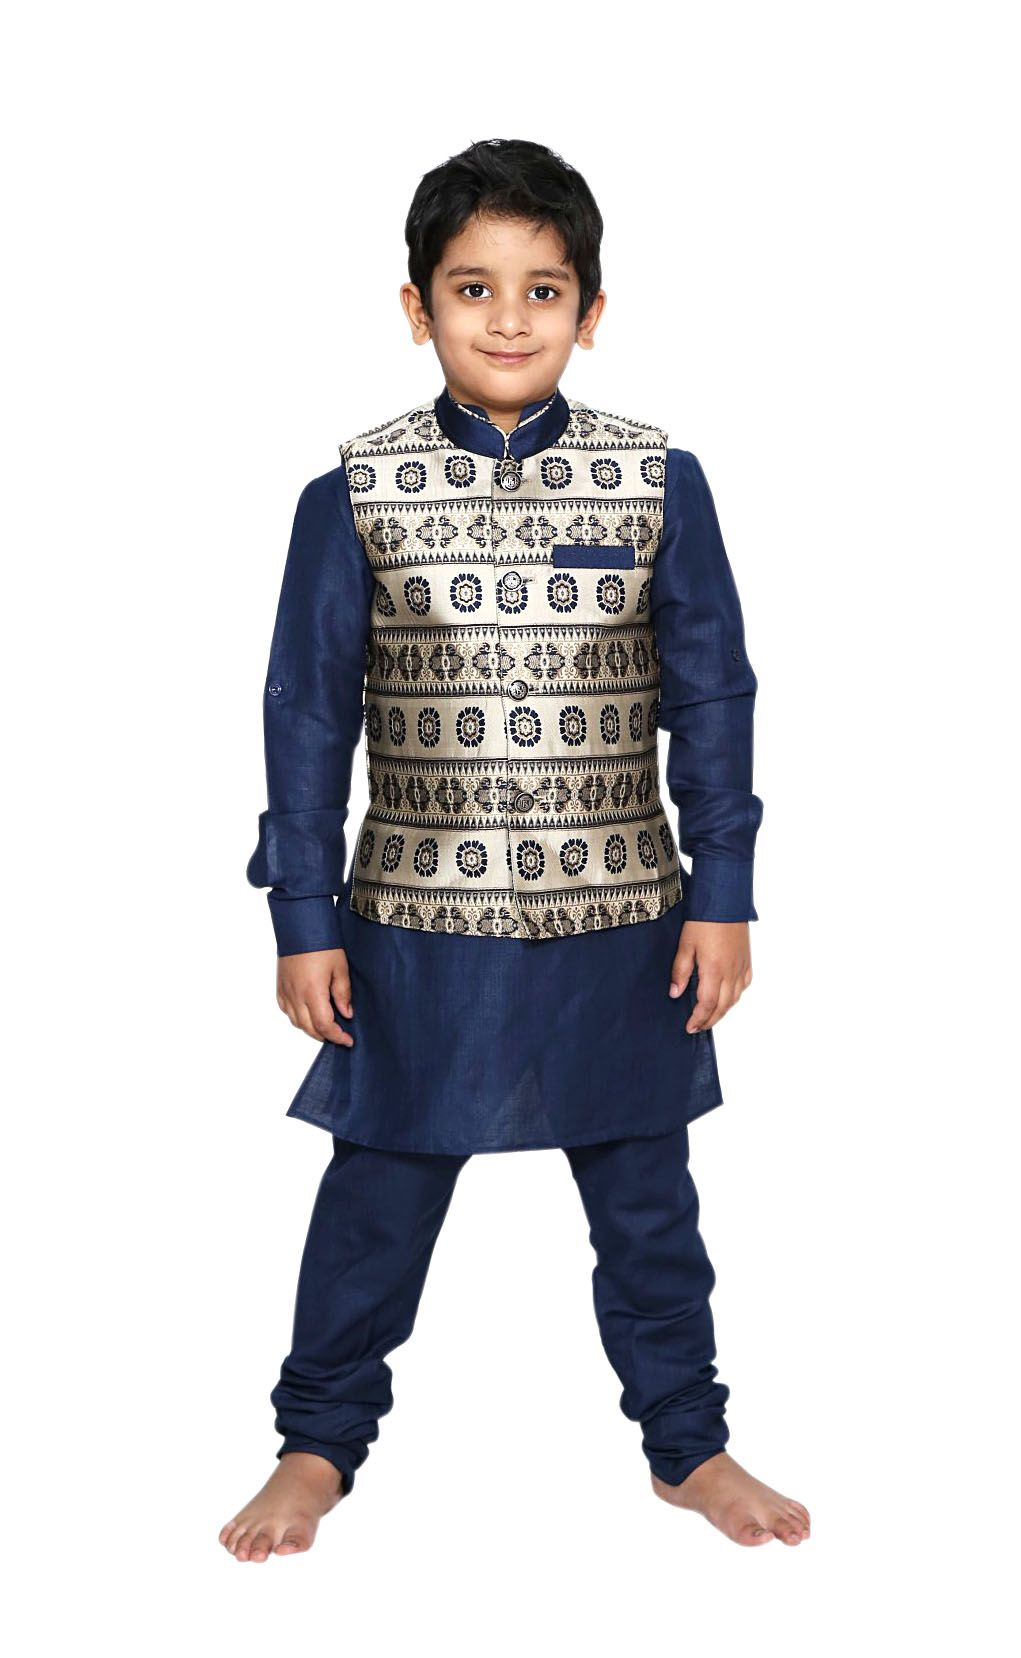 6594d358d Solid Navy Blue Kurta Pajama Set With Nehru Waistcoat Baby Boys Indian  Ethnic Dress Kids Traditional Wear for Weddings & Any Special Occasions # ethnicwear ...